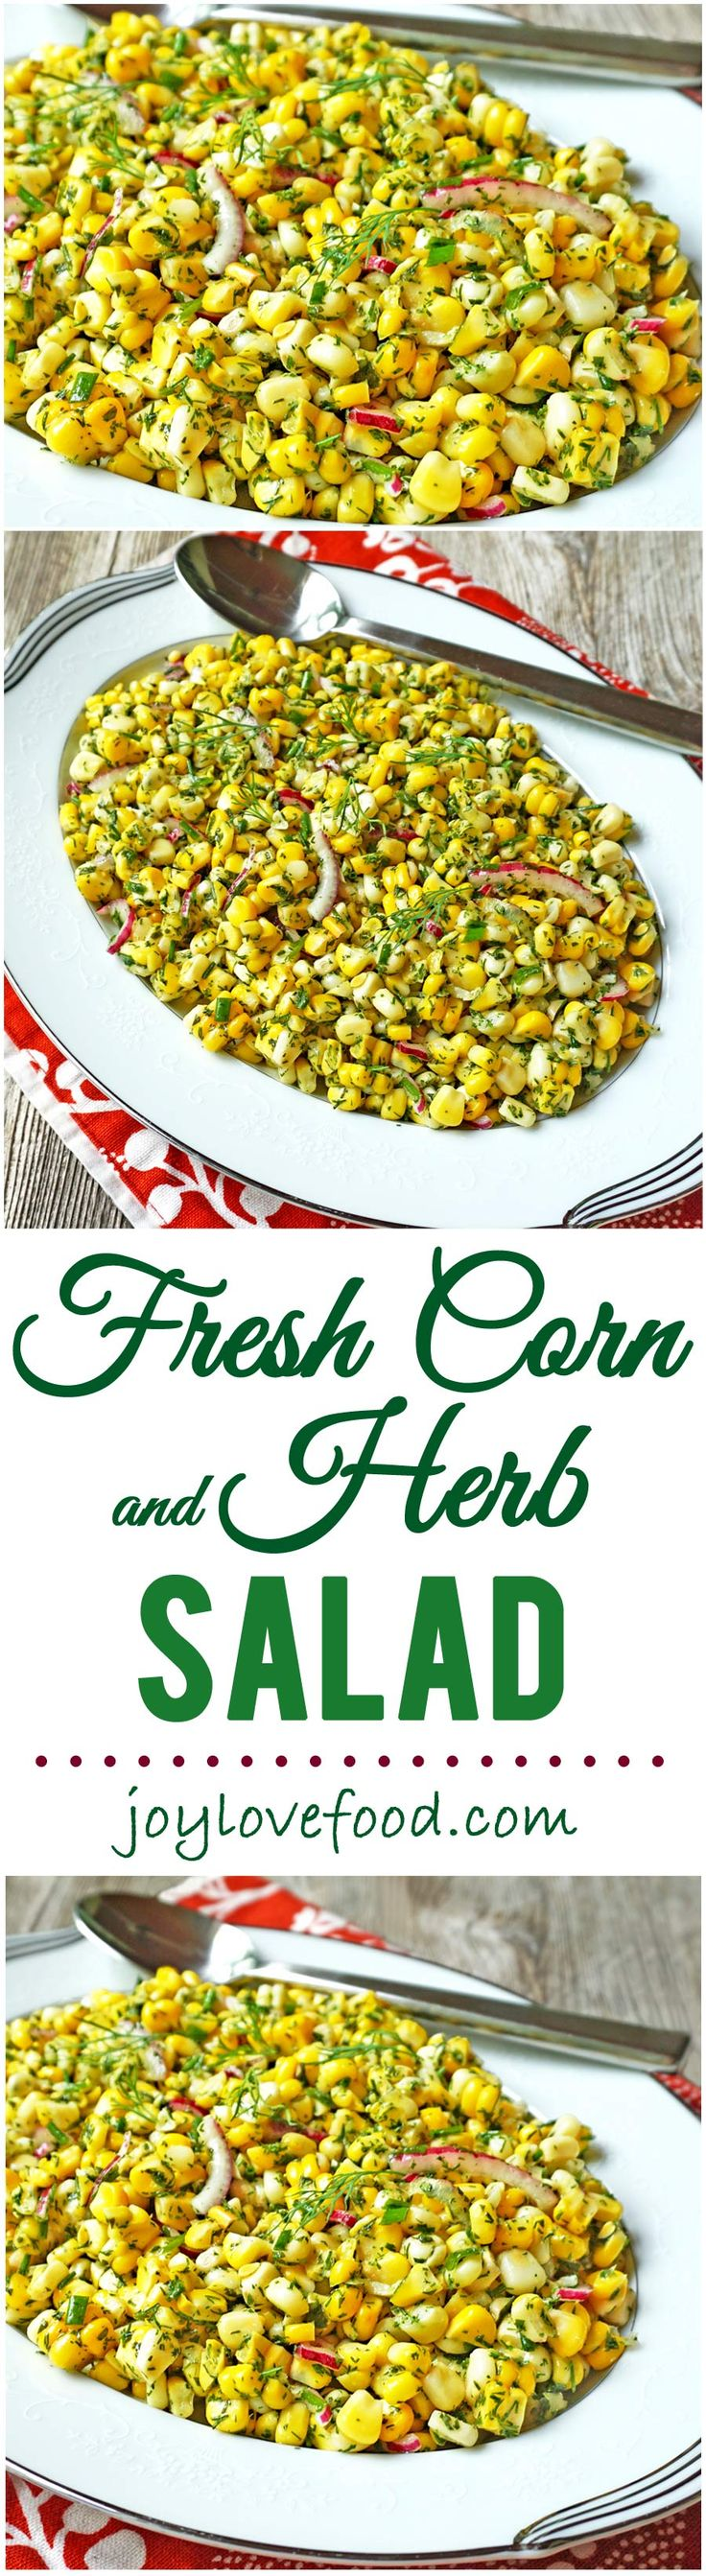 Fresh Corn and Herb Salad – this light and refreshing salad is full of flavor and a great side dish for a summer barbeque.